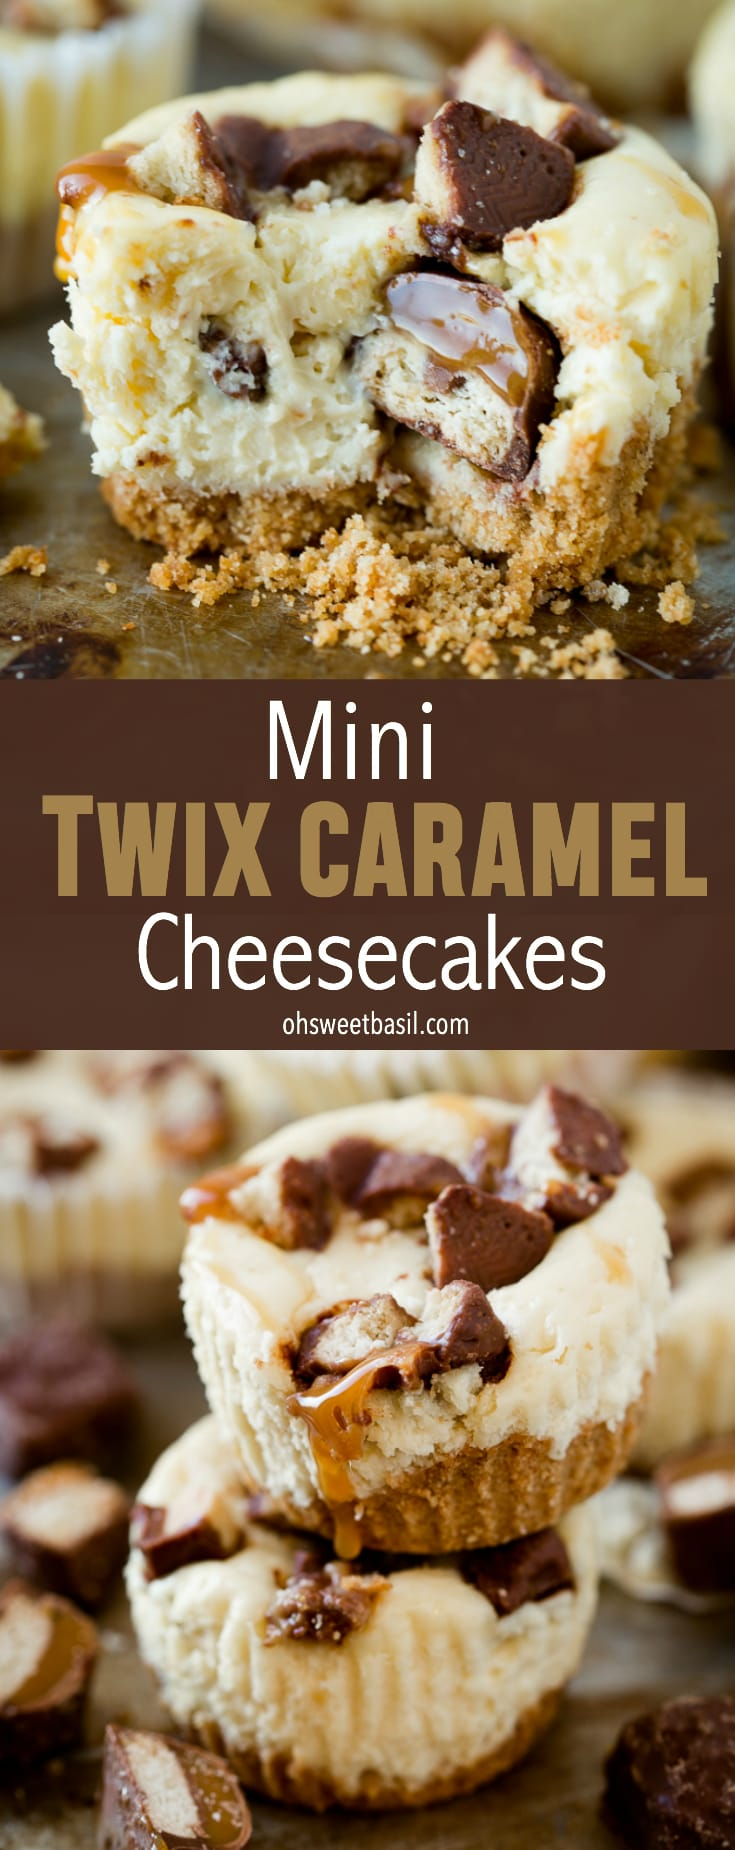 Mini Twix Caramel Cheesecakes